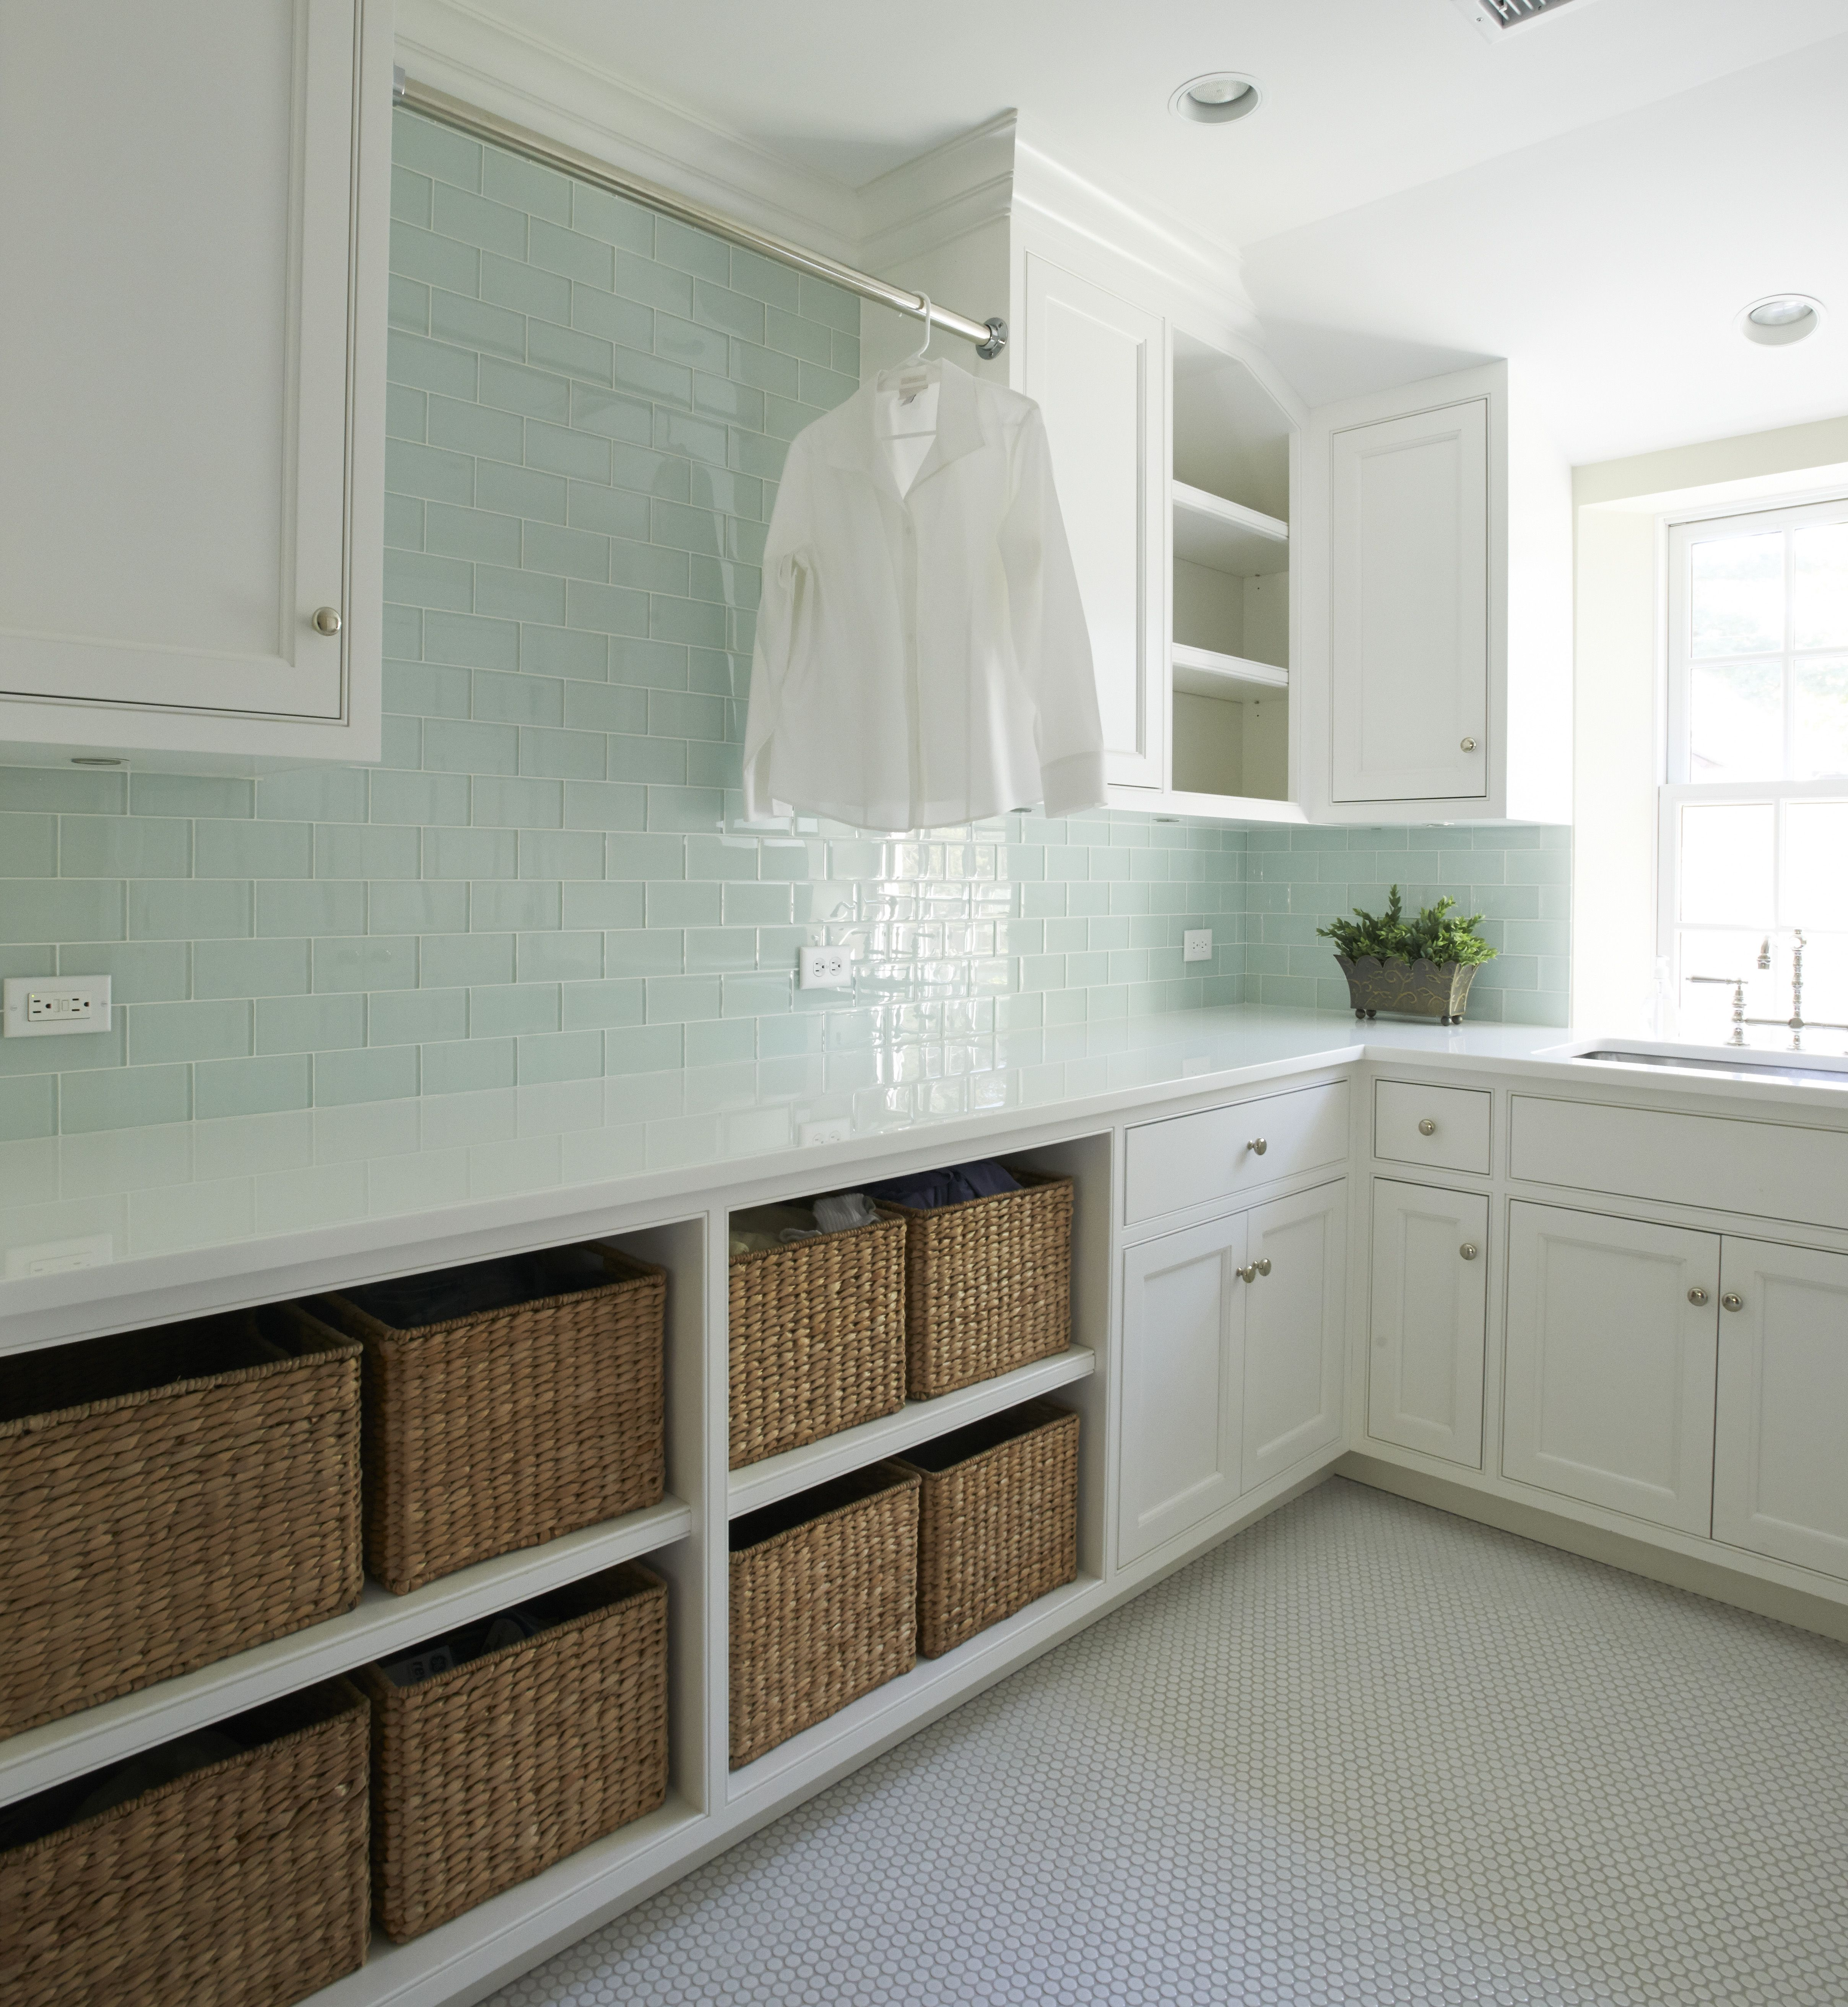 Surf glass subway tile more open shelves laundry rooms for Open shelving laundry room